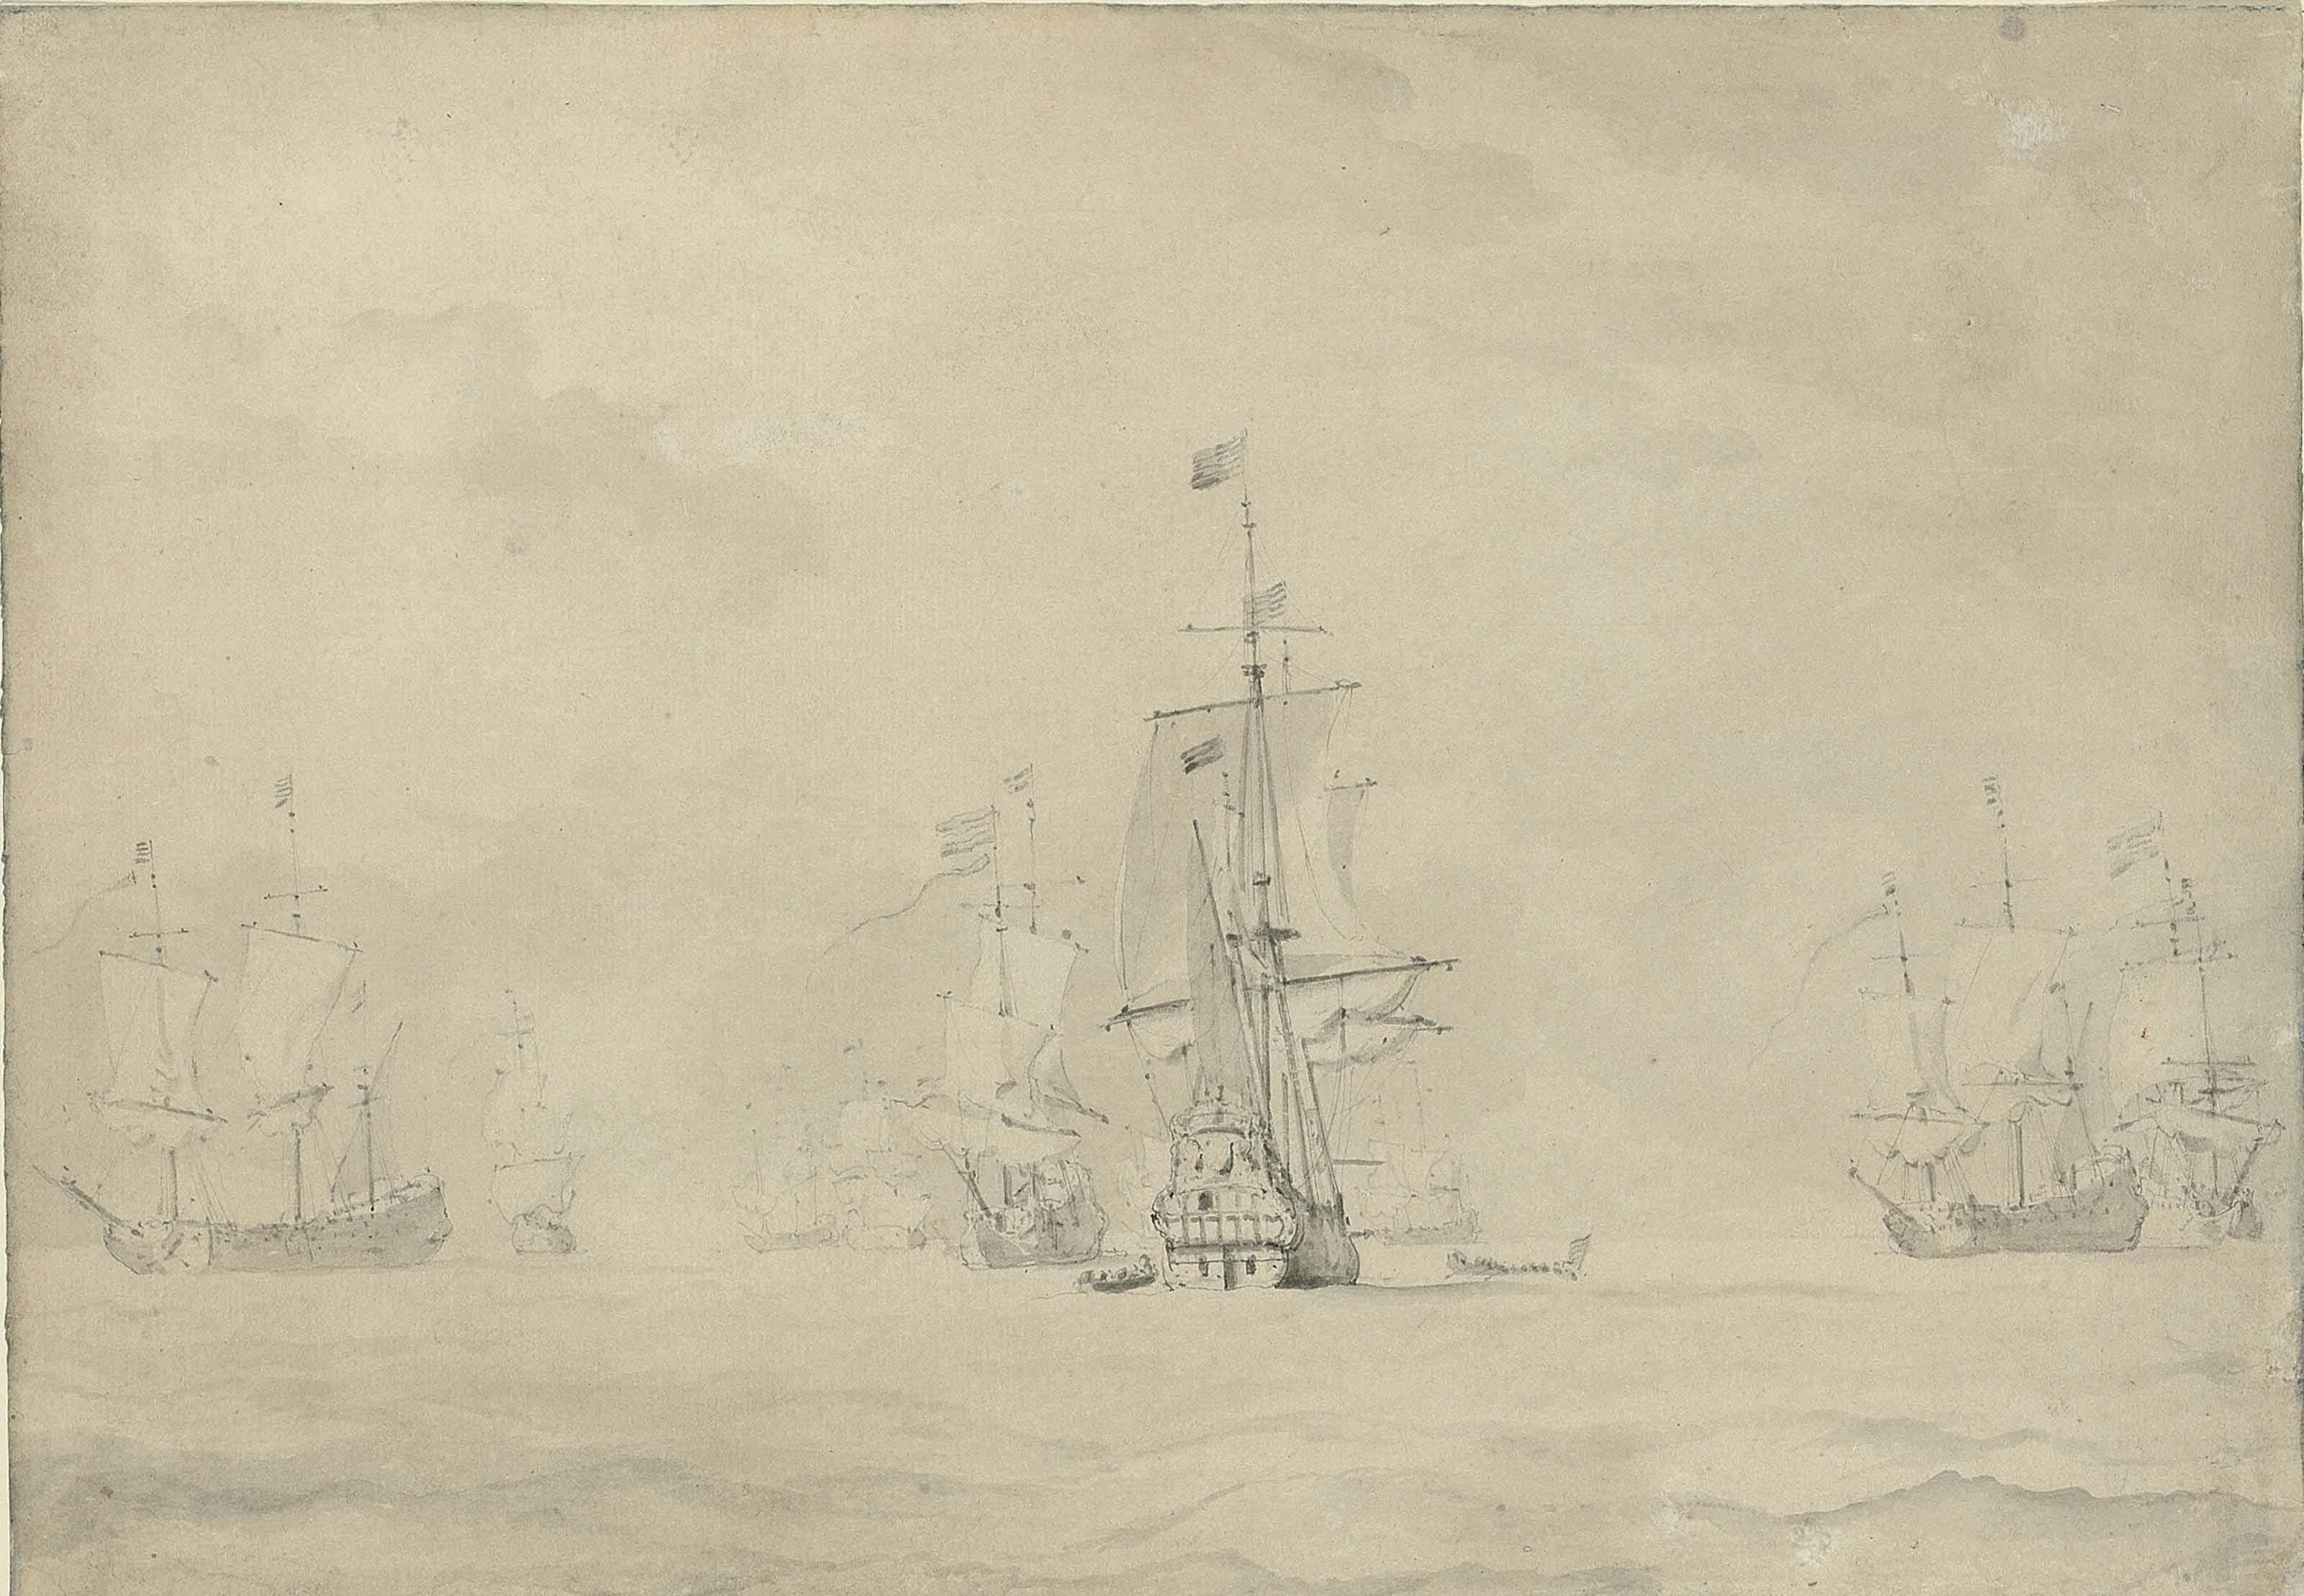 Admiral De Ruyter meeting Tromp aboard for a council of war after the Battle of Lowestoft in 1665